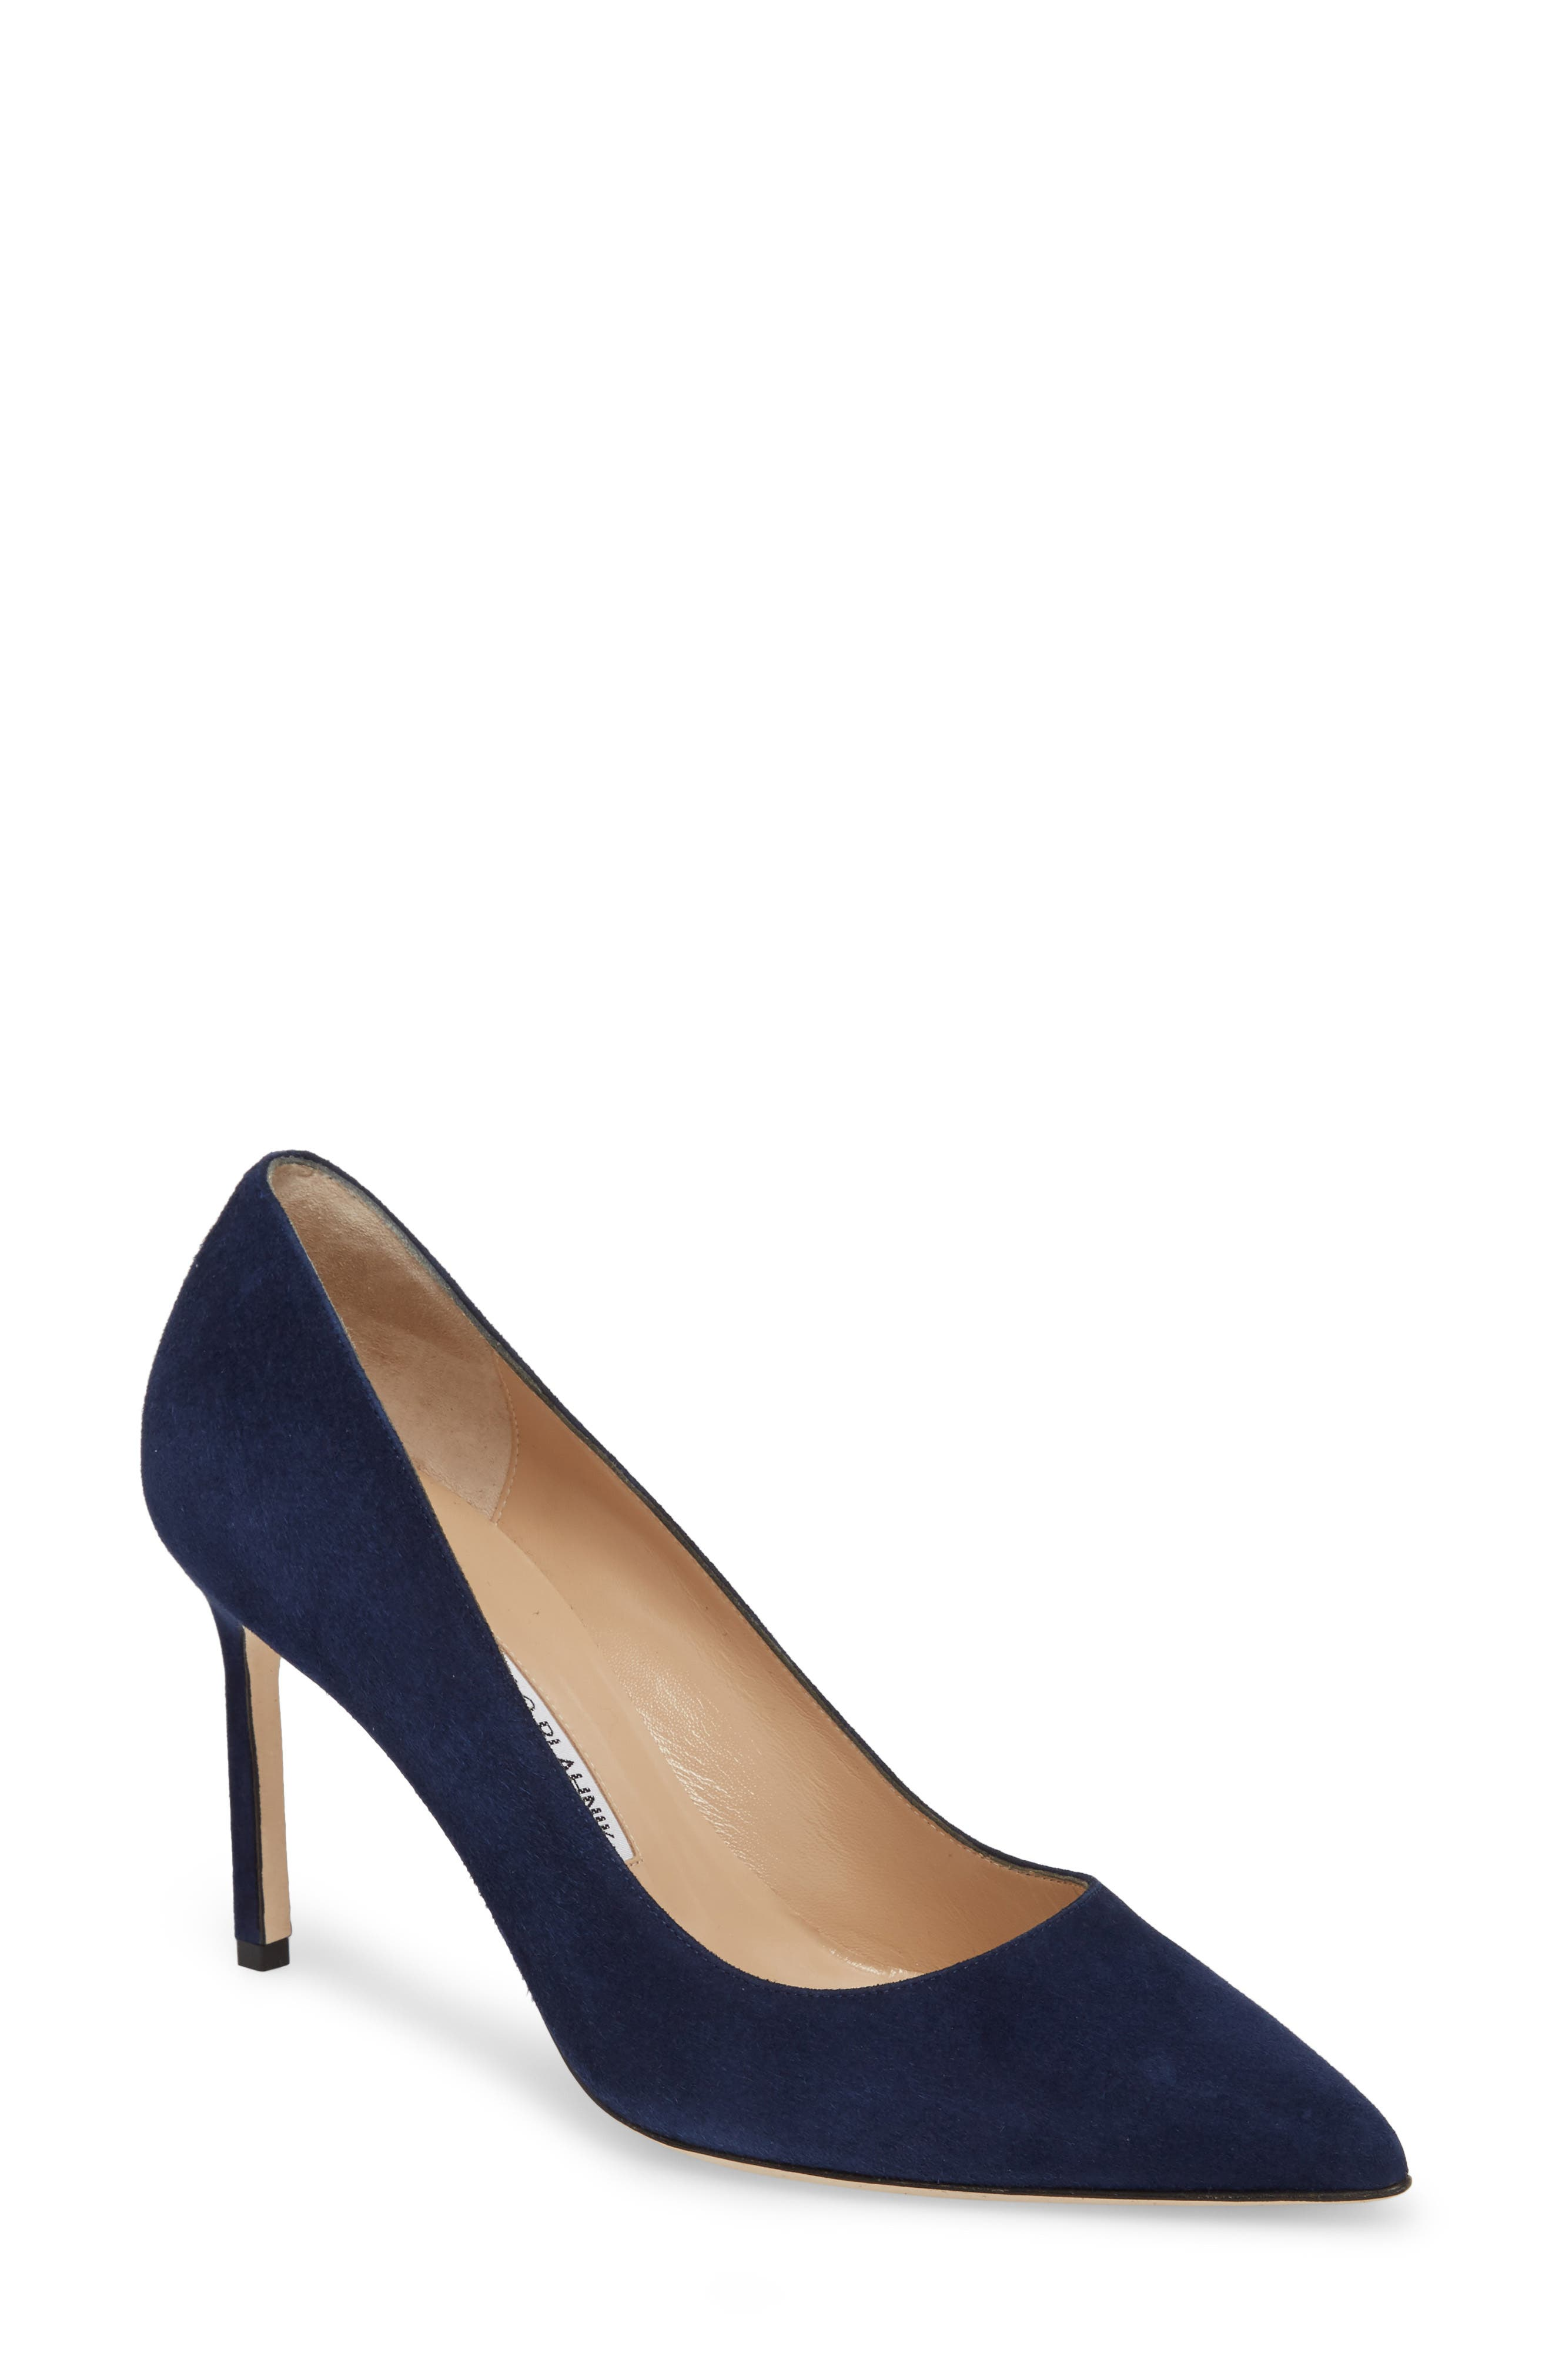 BB Pointy Toe Pump,                         Main,                         color, NAVY SUEDE